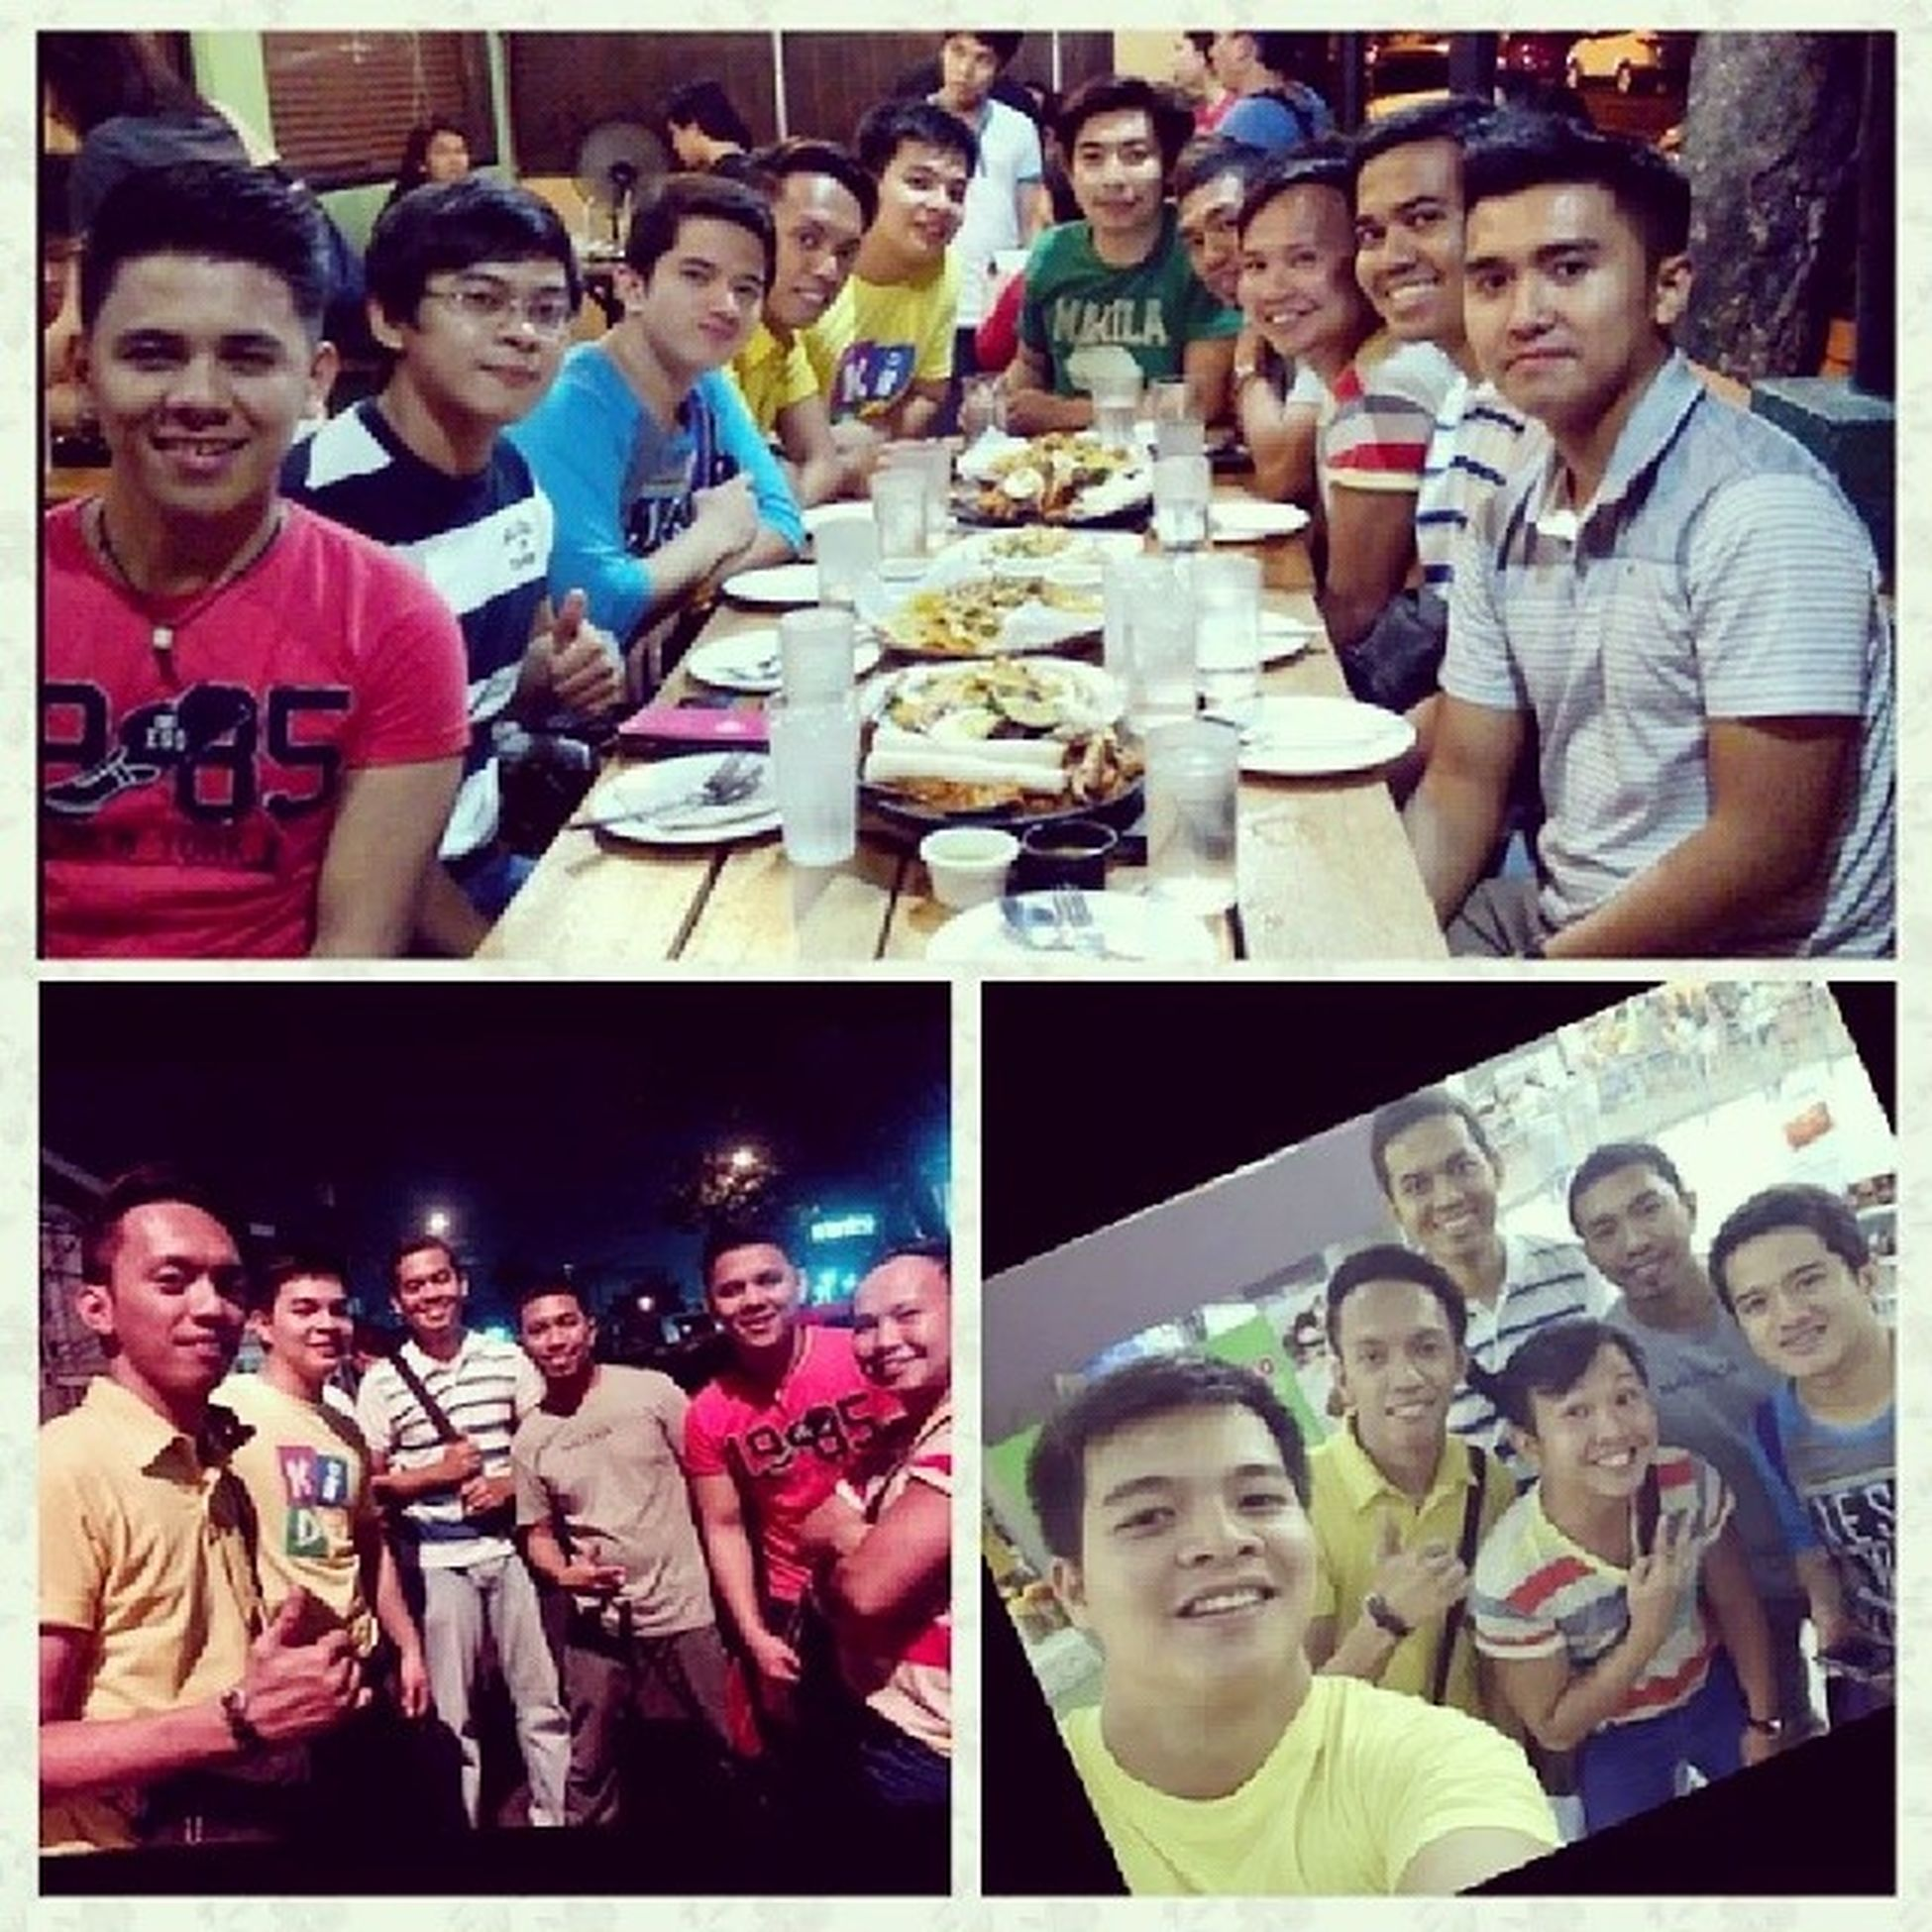 VictoryGroupFellowship MixVGroup Happyday